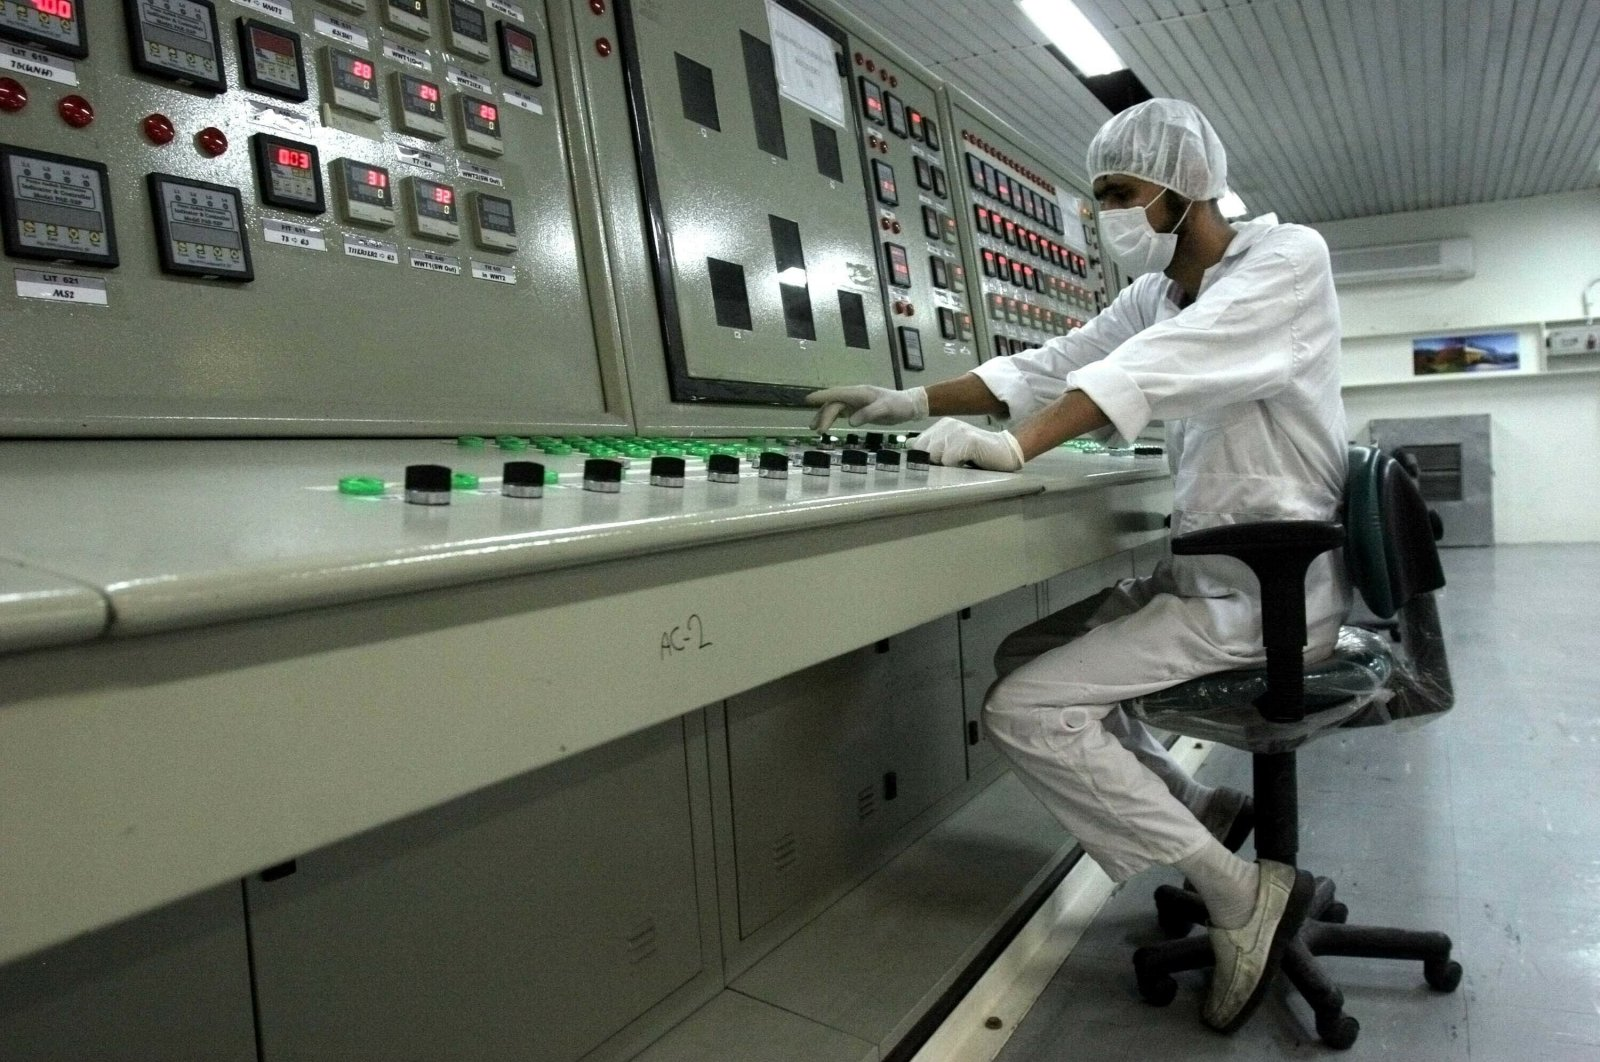 An Iranian technician works at the Uranium Conversion Facility just outside the city of Isfahan, 410 kilometers (255 miles) south of the capital Tehran, Iran, Feb. 3, 2007. (AP Photo)